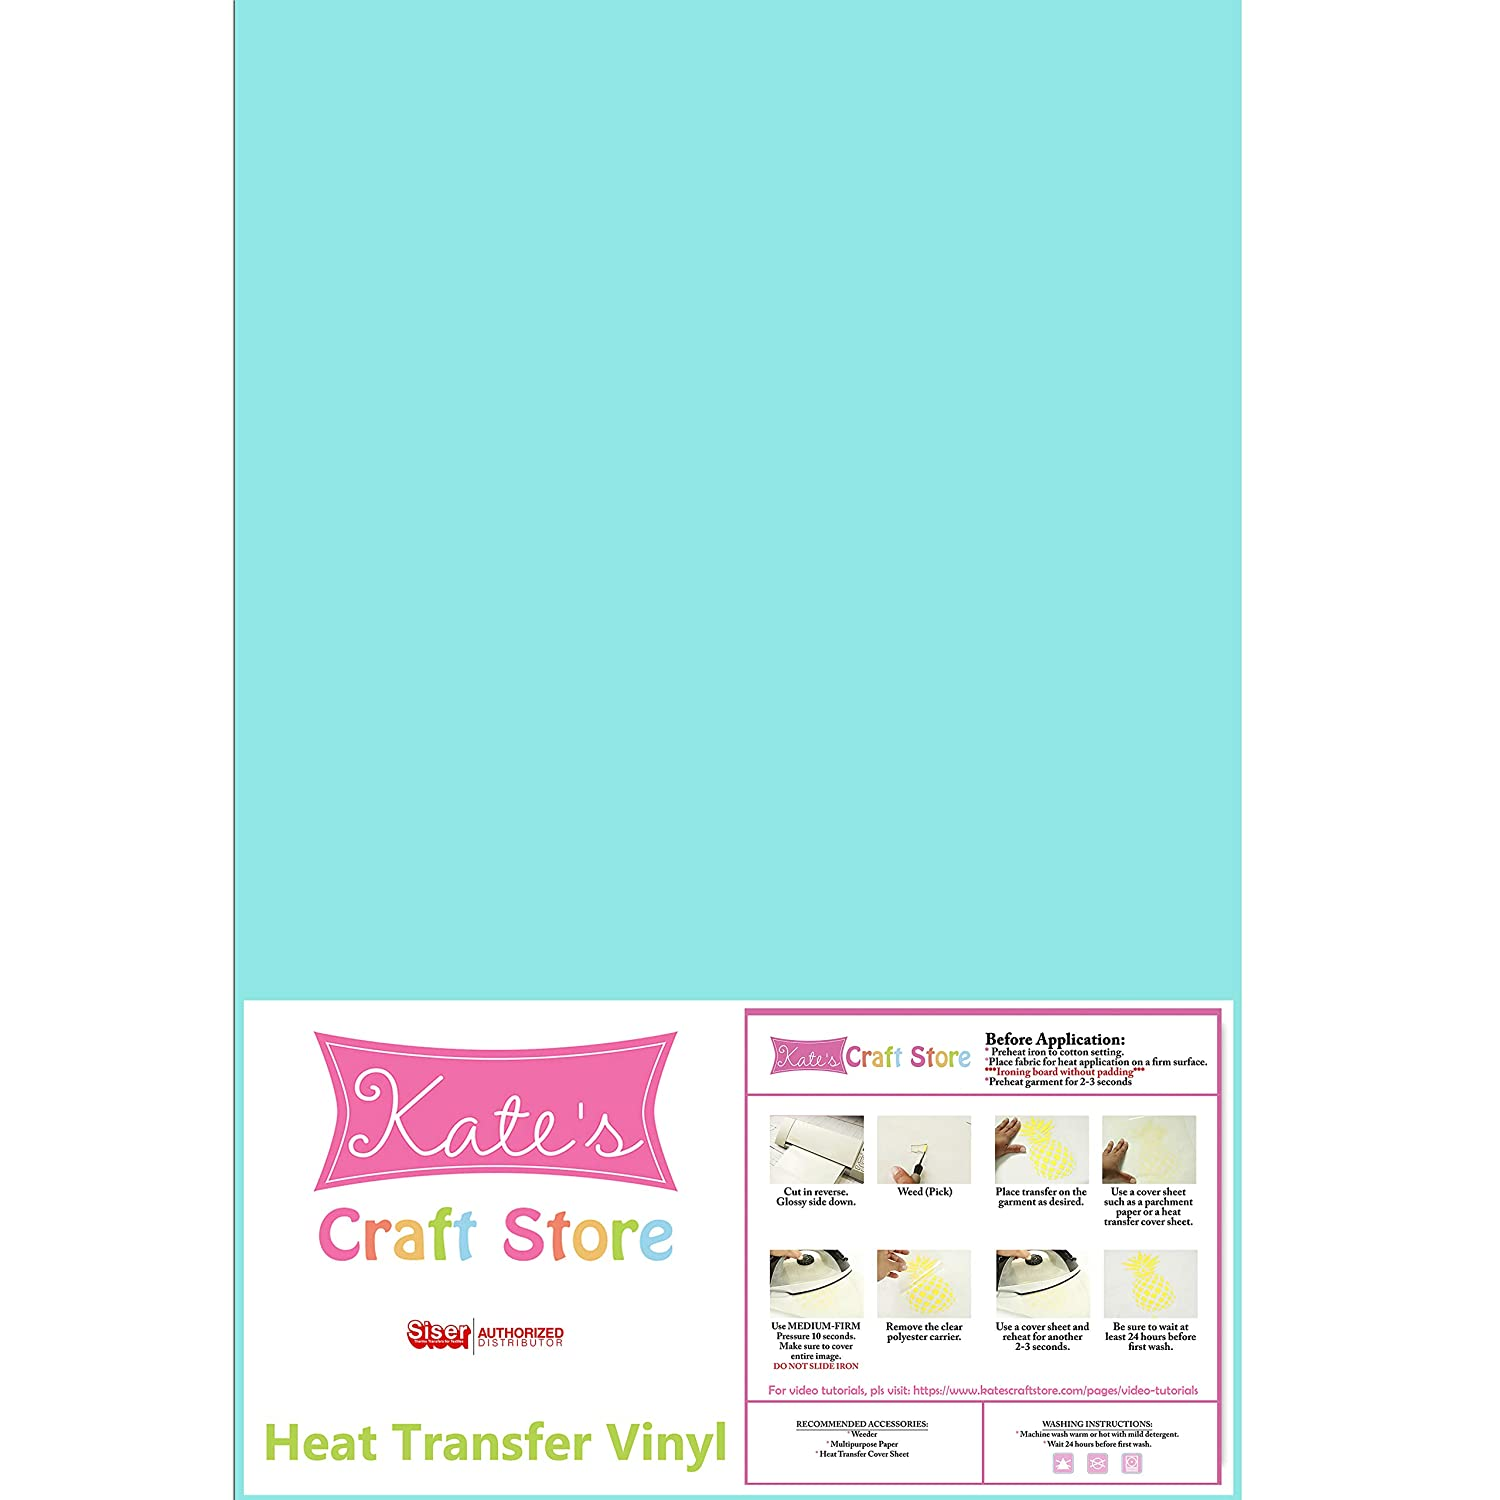 Aqua Marine Heat Press Machines. Iron on for Silhouette Cameo FilmTailor Cricut PU HTV 10 x 12 Heat Transfer Vinyl Basic 5 Sheets Excellent for T-Shirt Hats and Any Fabric